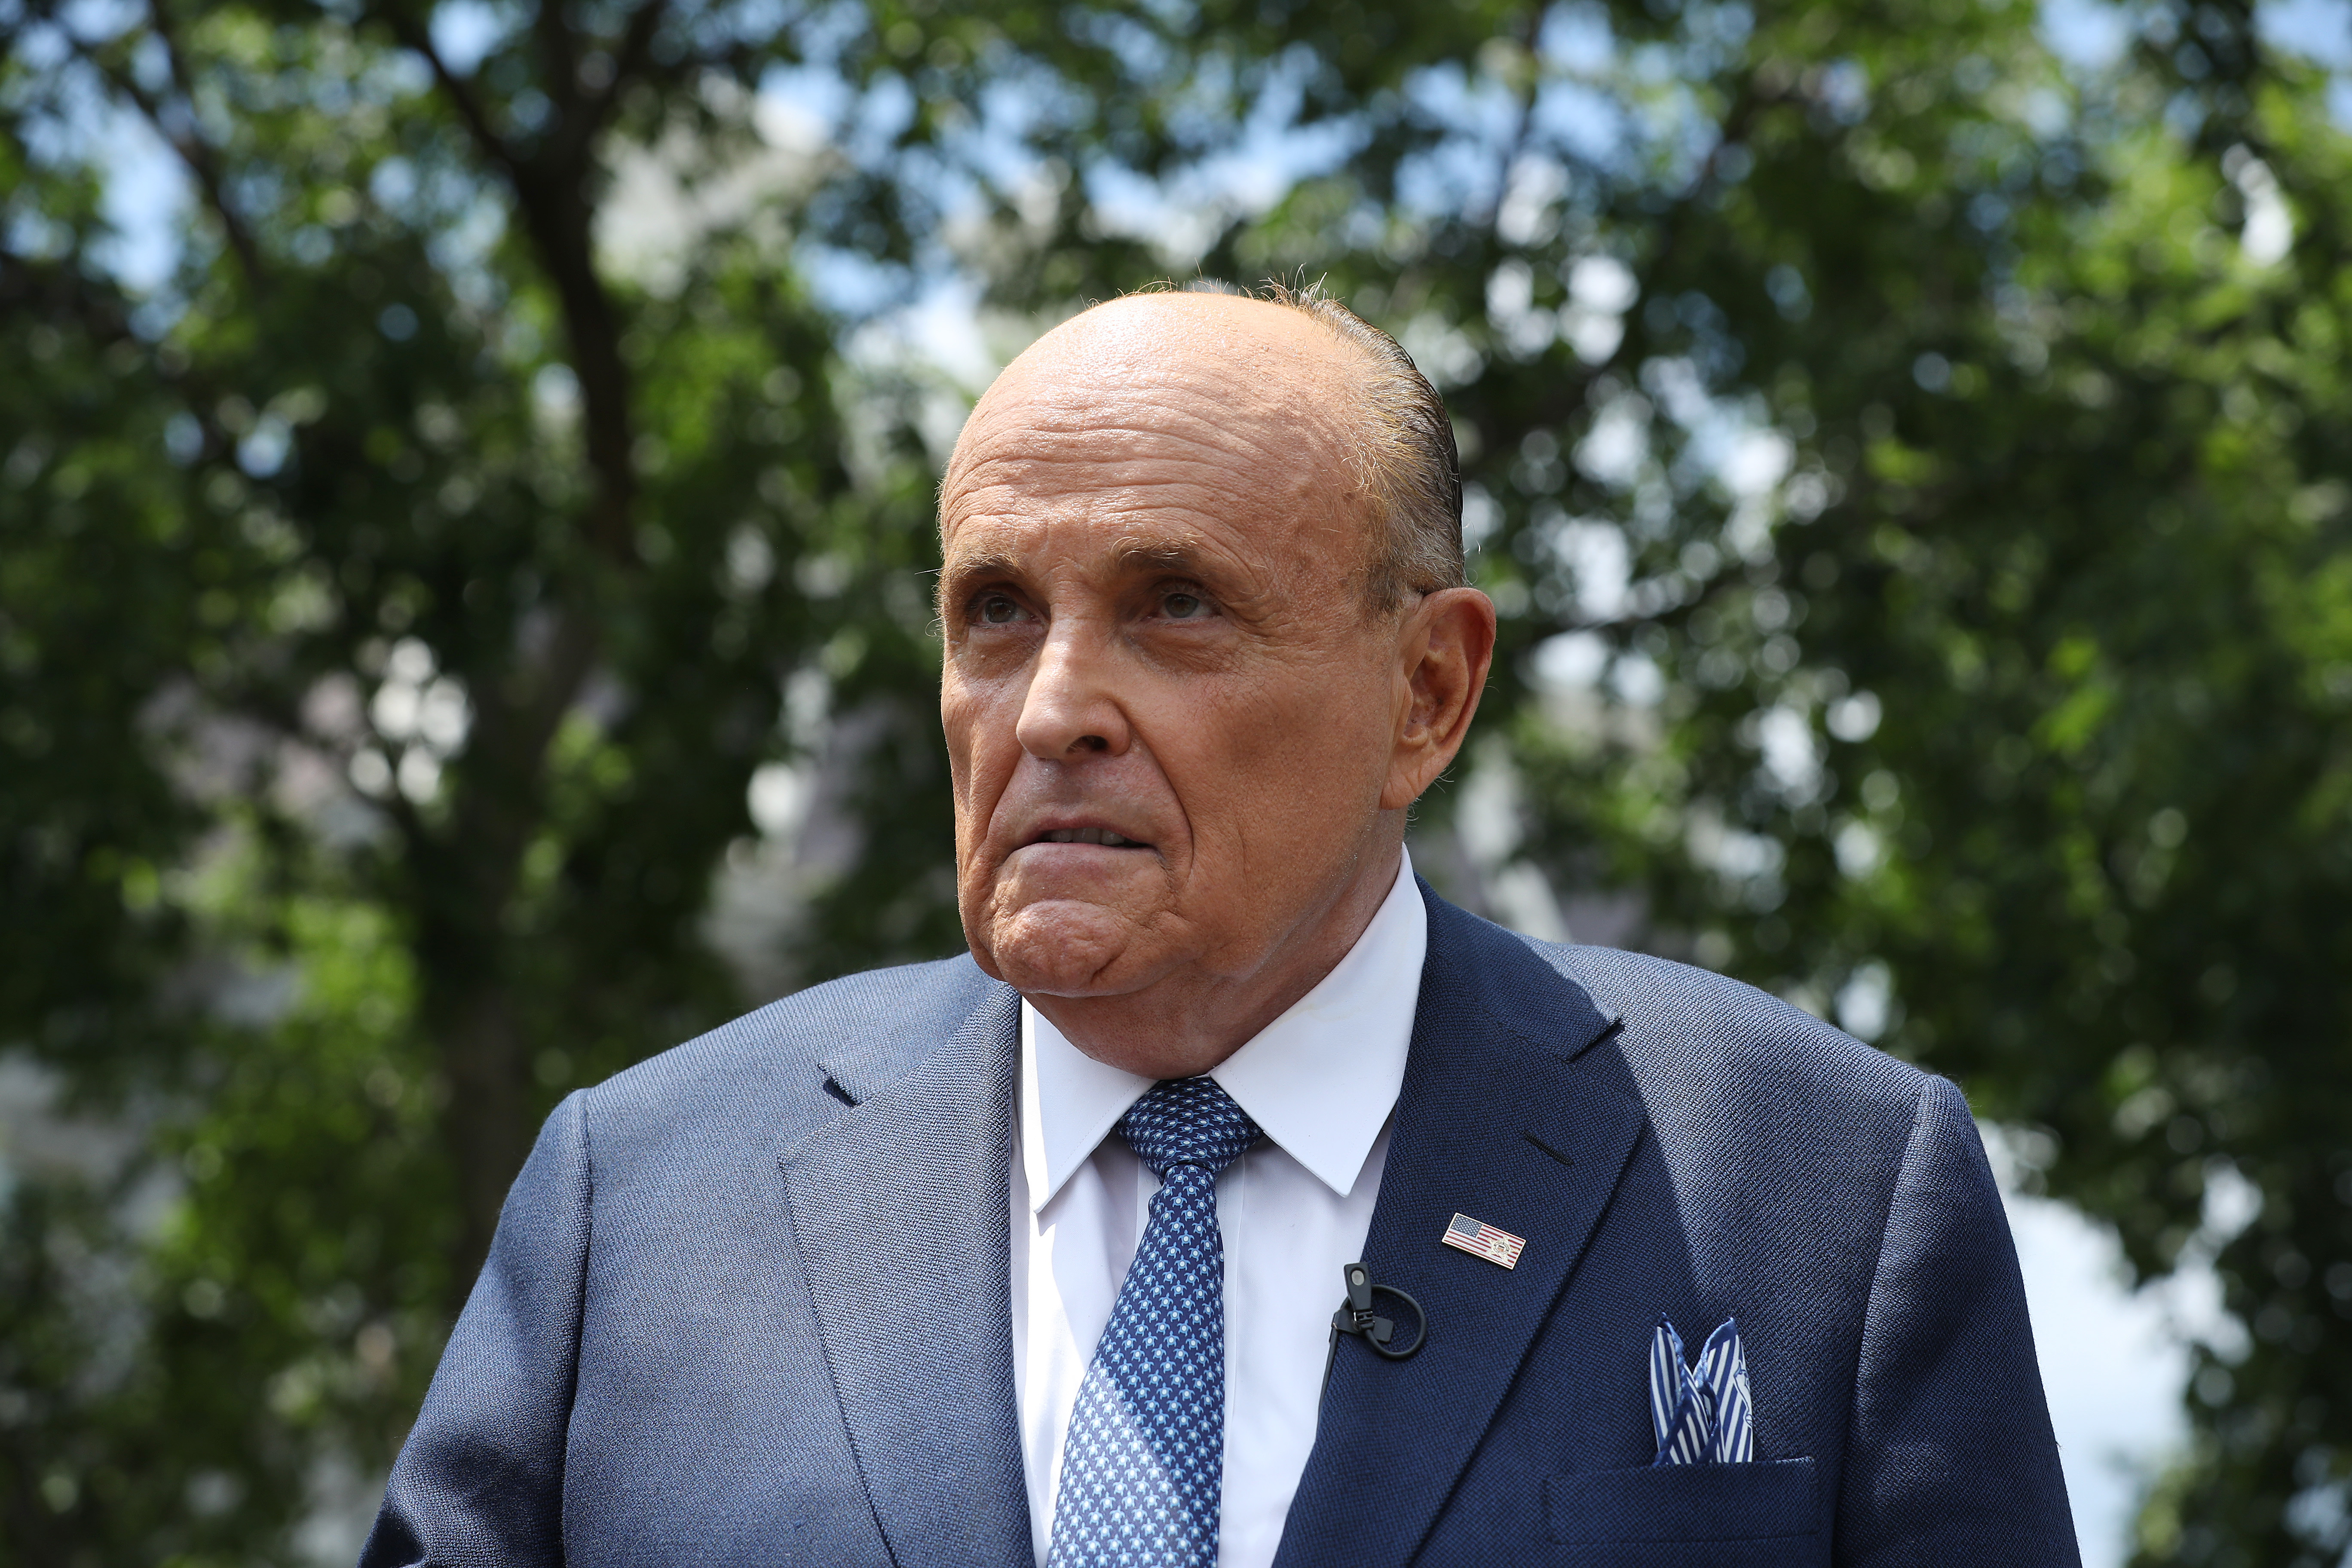 Caught in shocking Borat 2 bedroom scene with young woman, Rudy Giuliani claims hes the victim: Everybody in Hollywood hates me